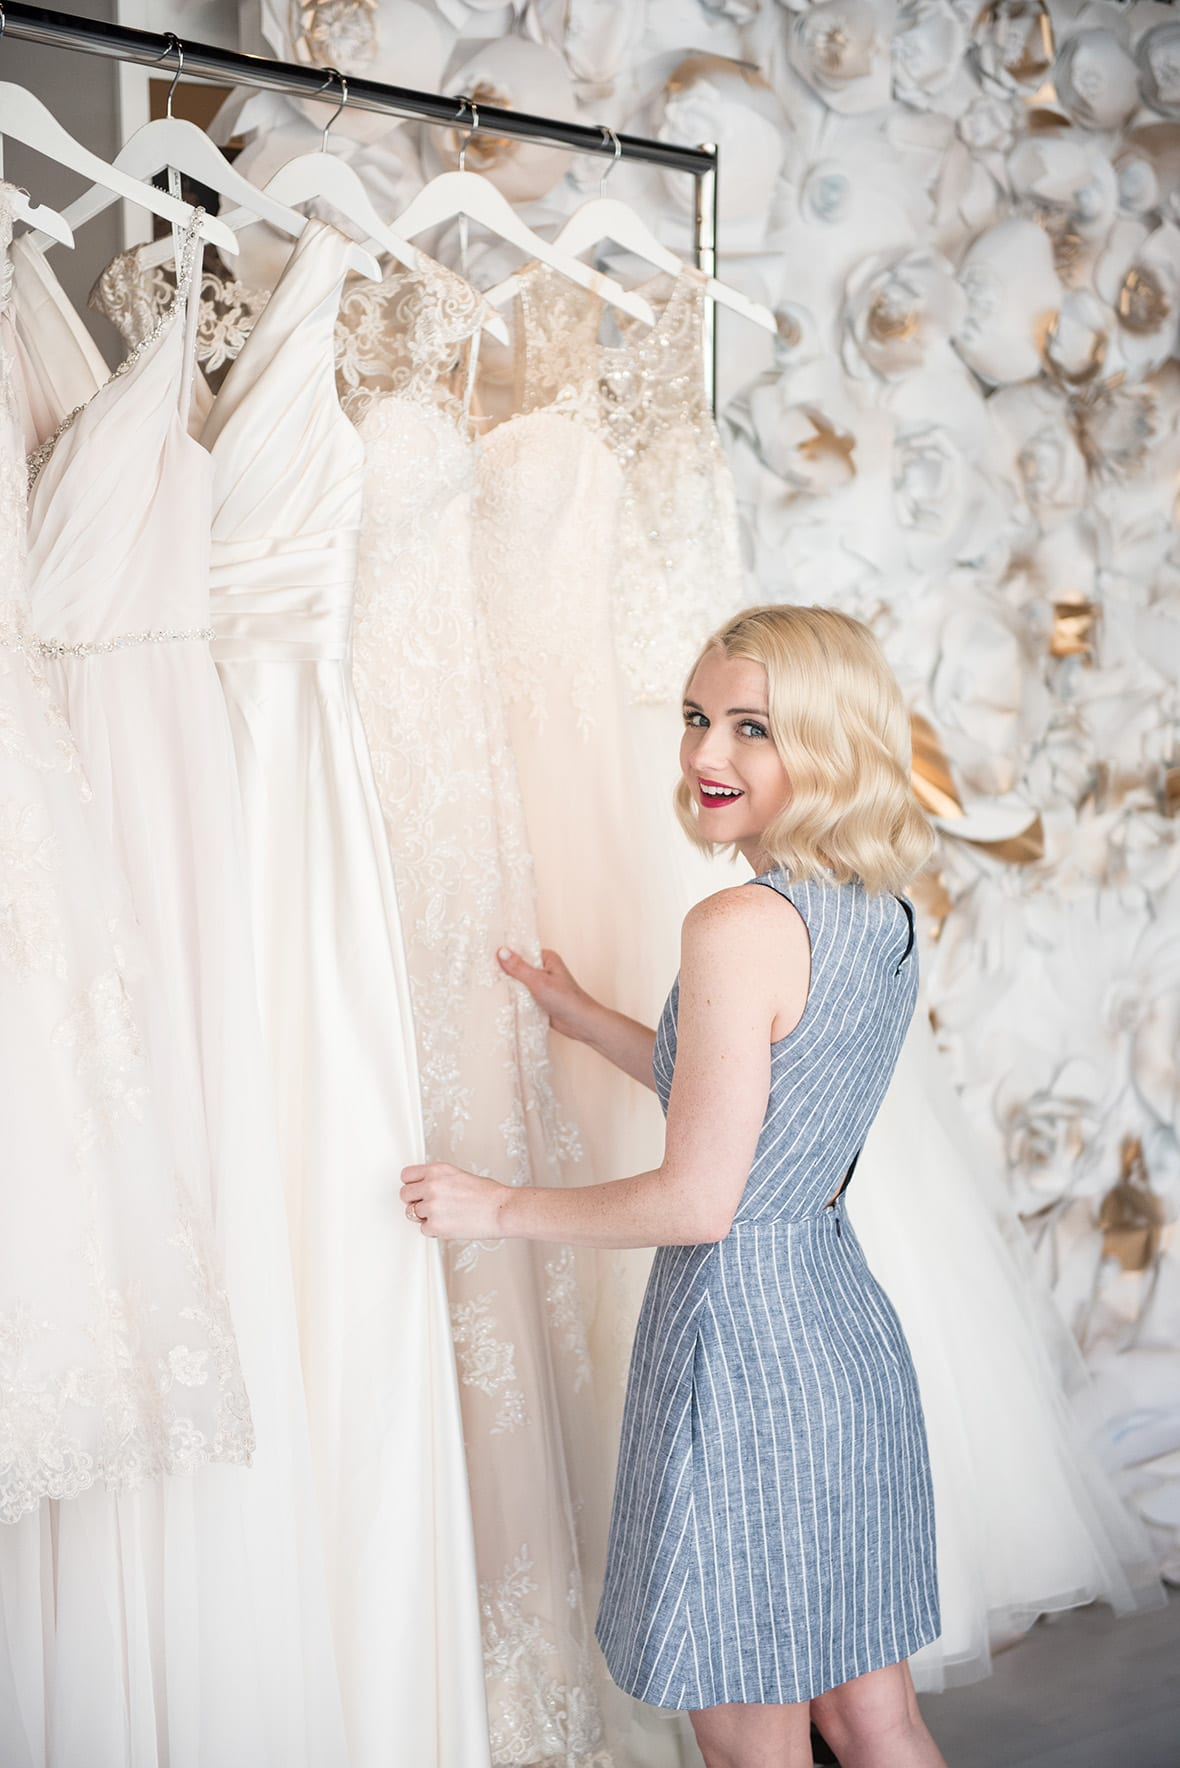 how to find your perfect wedding dress perfect wedding dress How To Find Your Perfect Wedding Dress